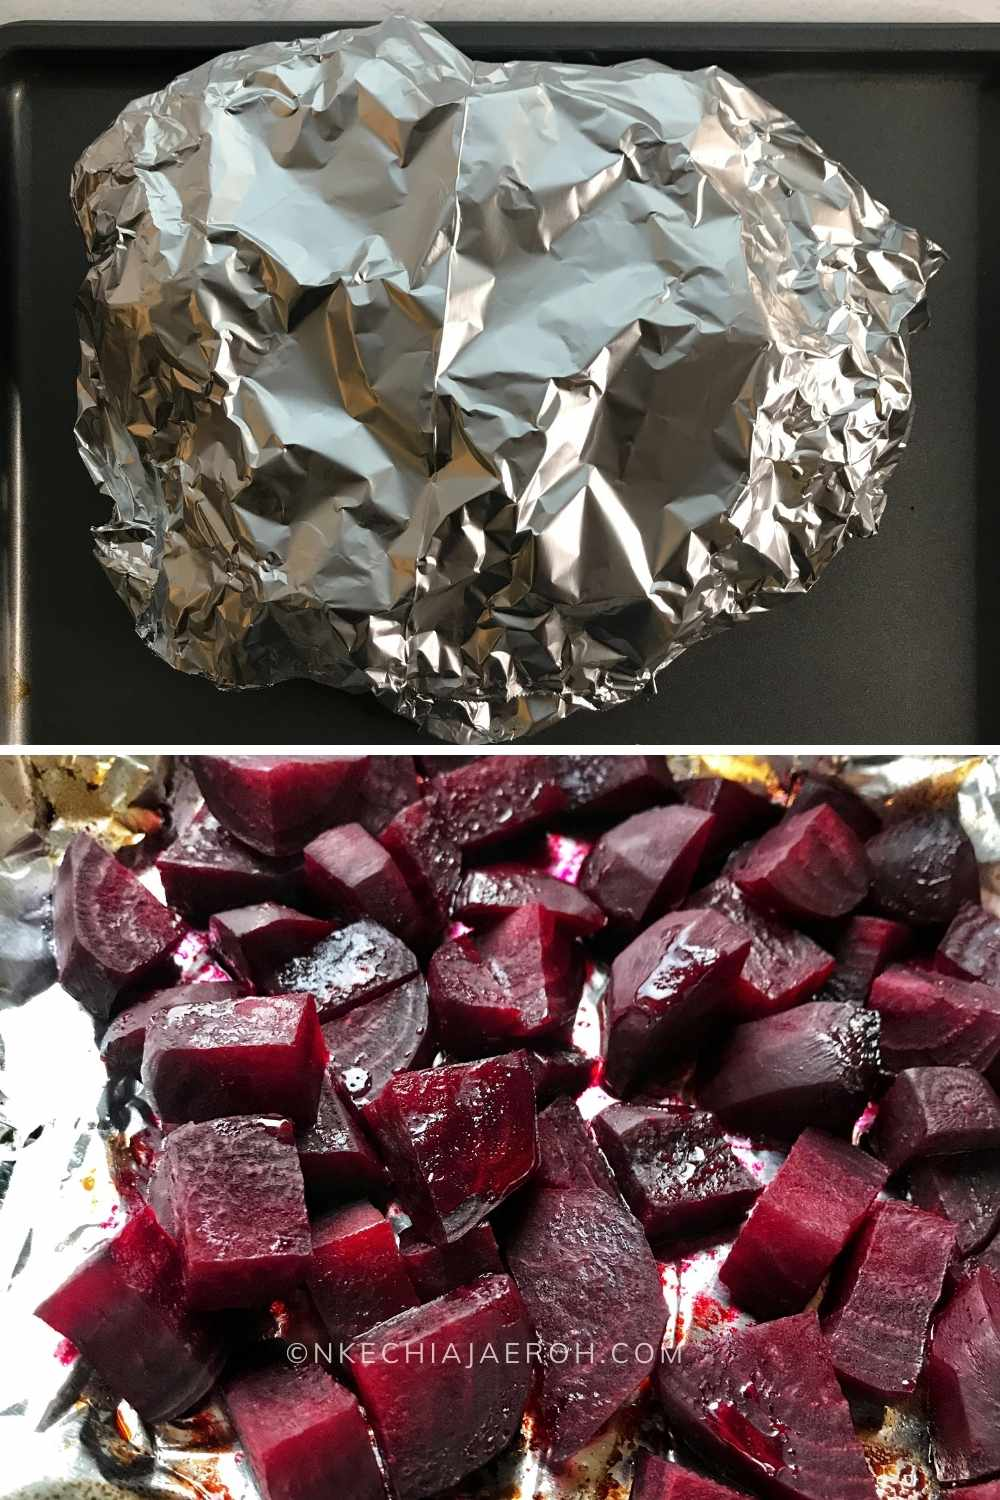 Don't like raw beets? Then roast beet - yes, you heard me! I love cooked beets as well; they are so sweet. If you struggle with eating raw beets or new to beetroot, I suggest you boil or bake the beets before adding them to your salads. Personally, I think baking/roasting helps to keep all the flavors intact. My forever tip for roasting beets is to cut them into cubes, sprinkle a little salt, and some EVOO. Wrap in foil and bake until tender; the cooking time will depend on the size of the beet. But it usually takes between 30 - 50 minutes; below is some beetroot I had roasted the other day!